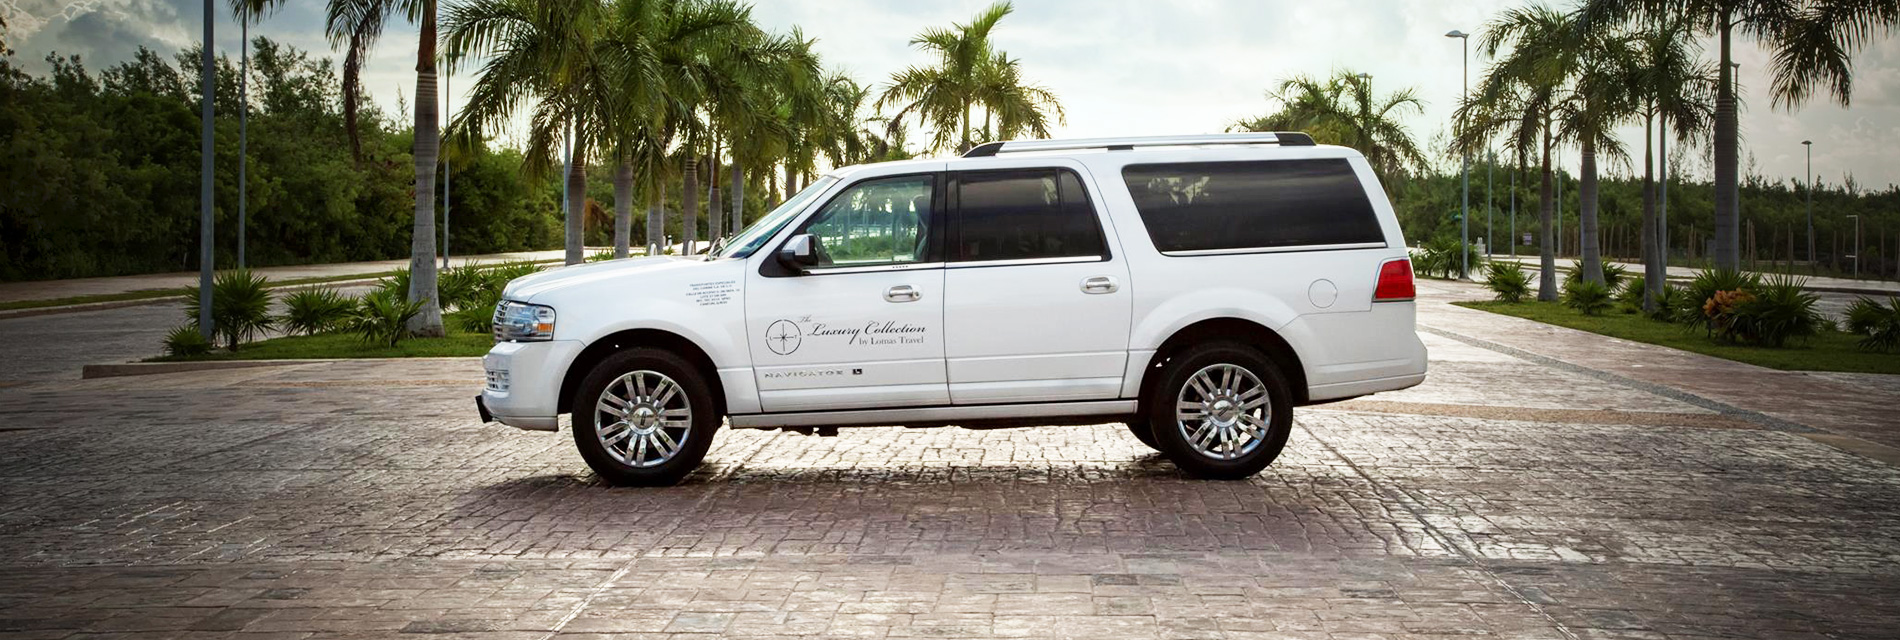 Cancun Airport Transportation Transfers And Shuttles Can